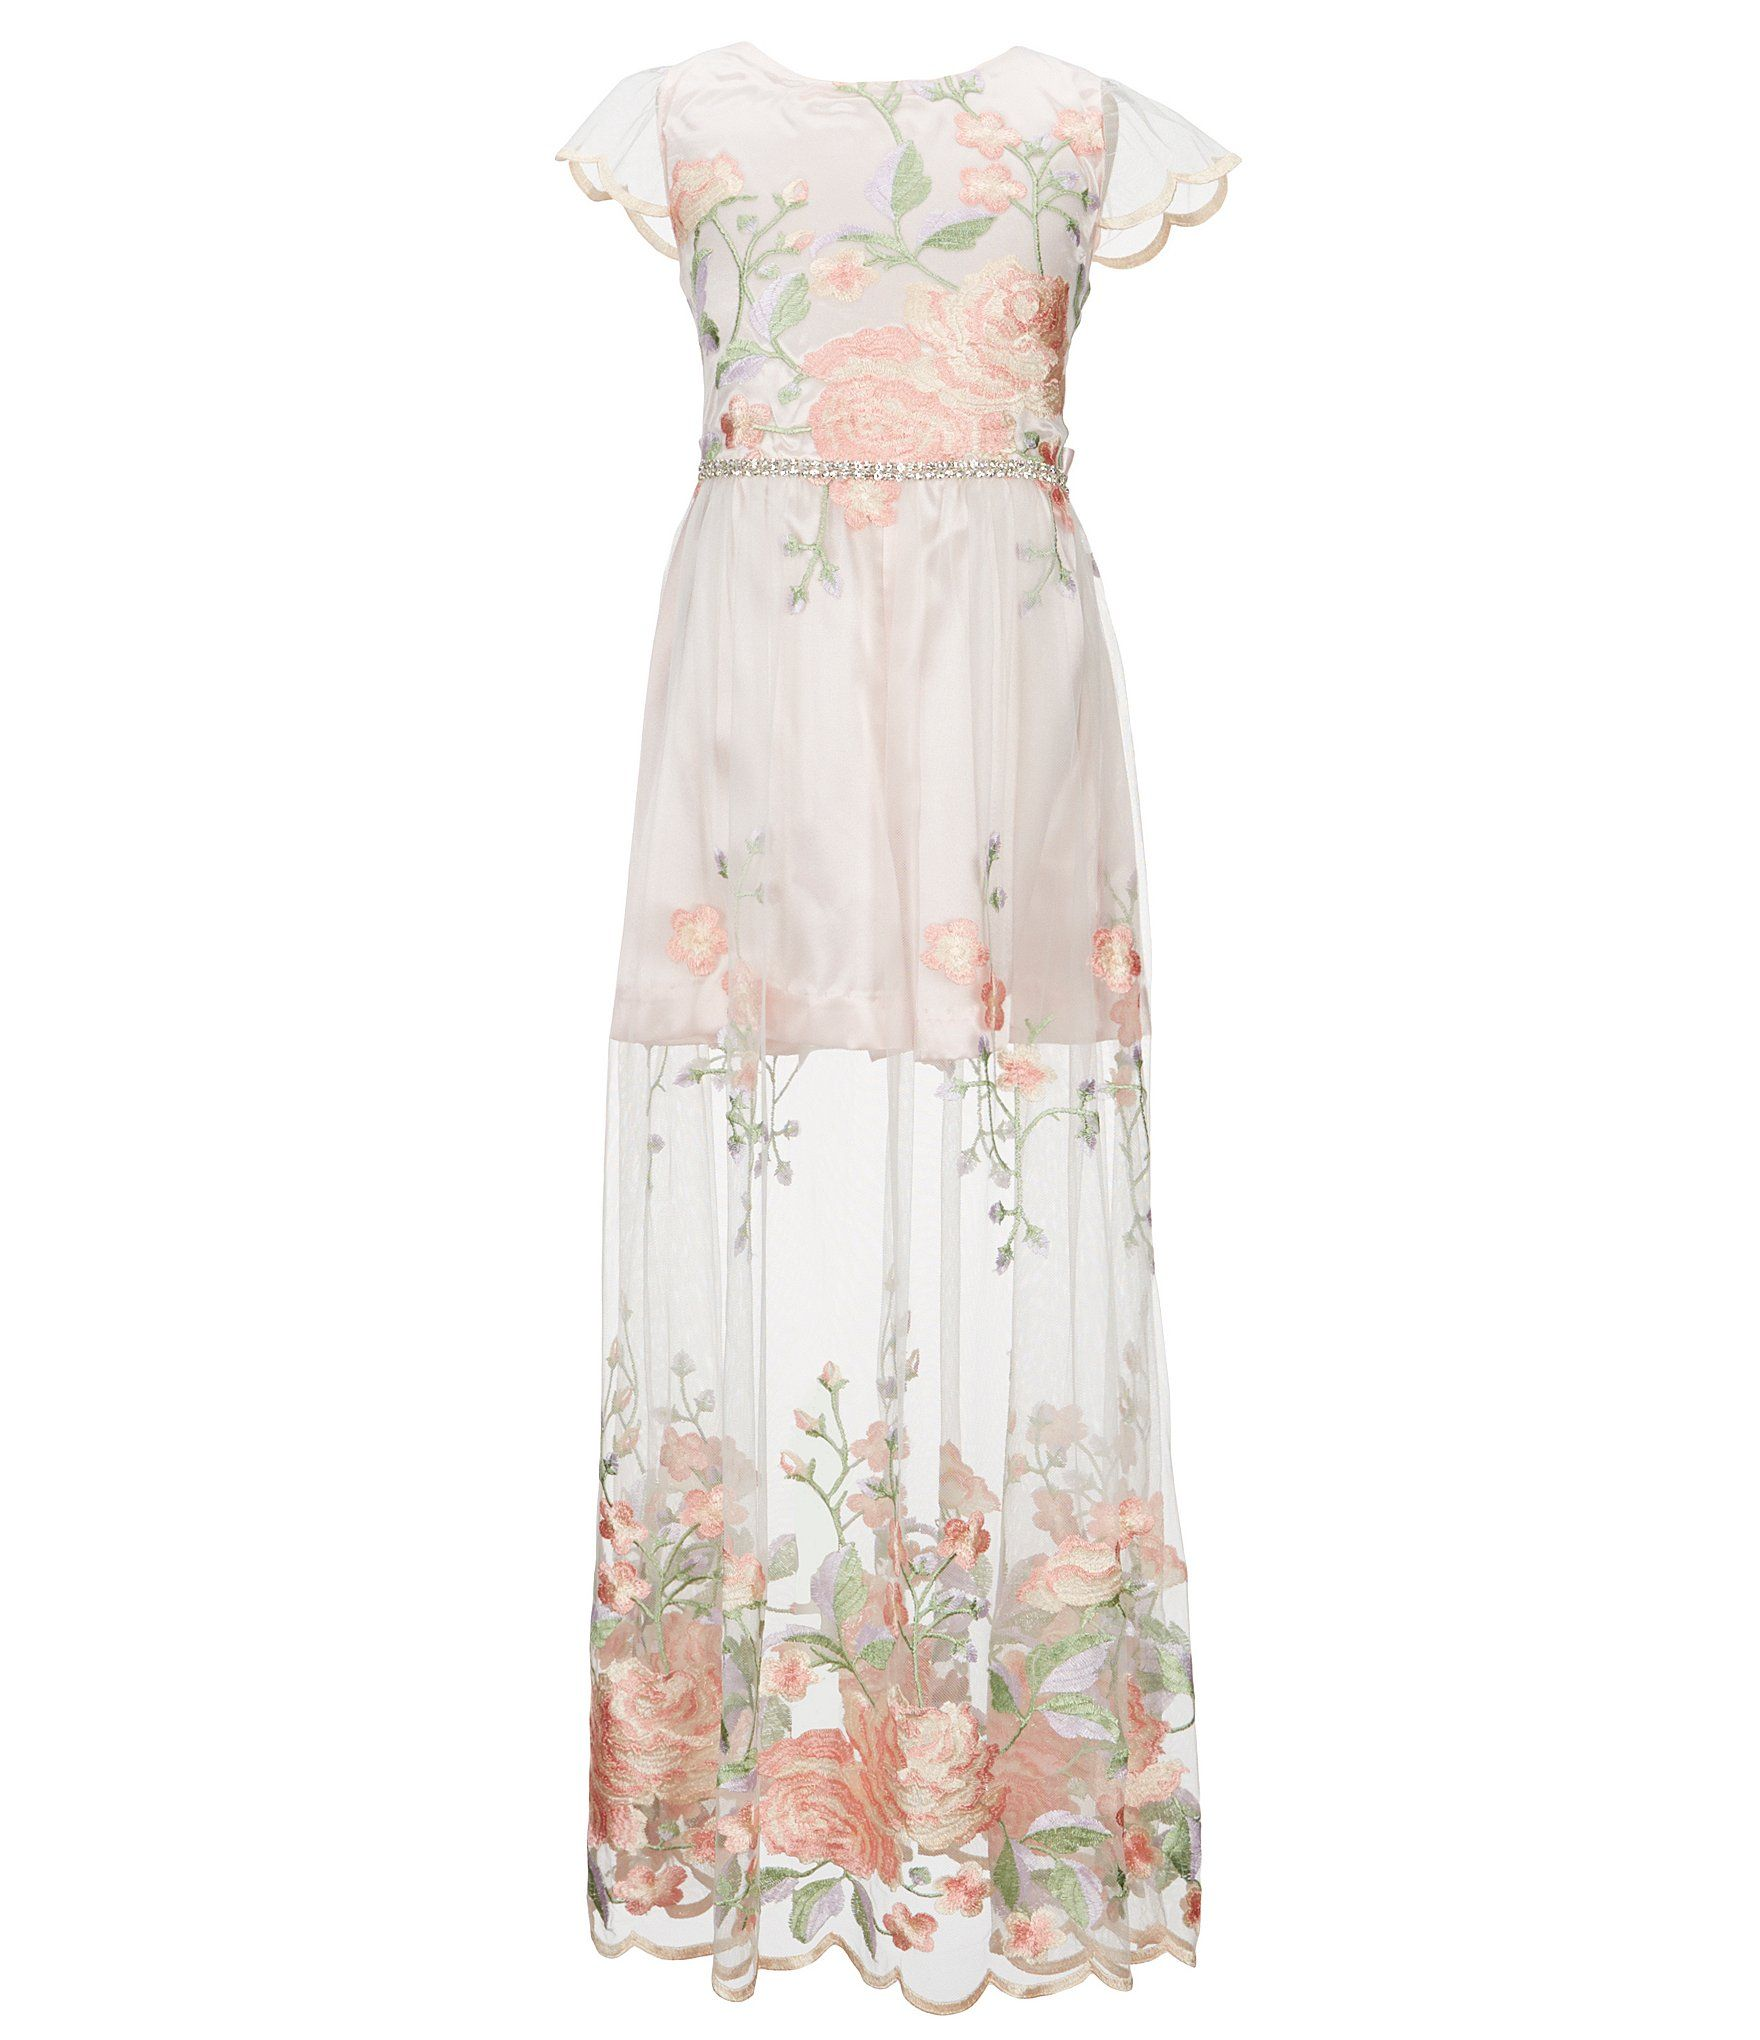 9000c6b2cf3 Shop for Rare Editions Big Girls 7-16 Floral-Embroidered Maxi Romper at  Dillards.com. Visit Dillards.com to find clothing